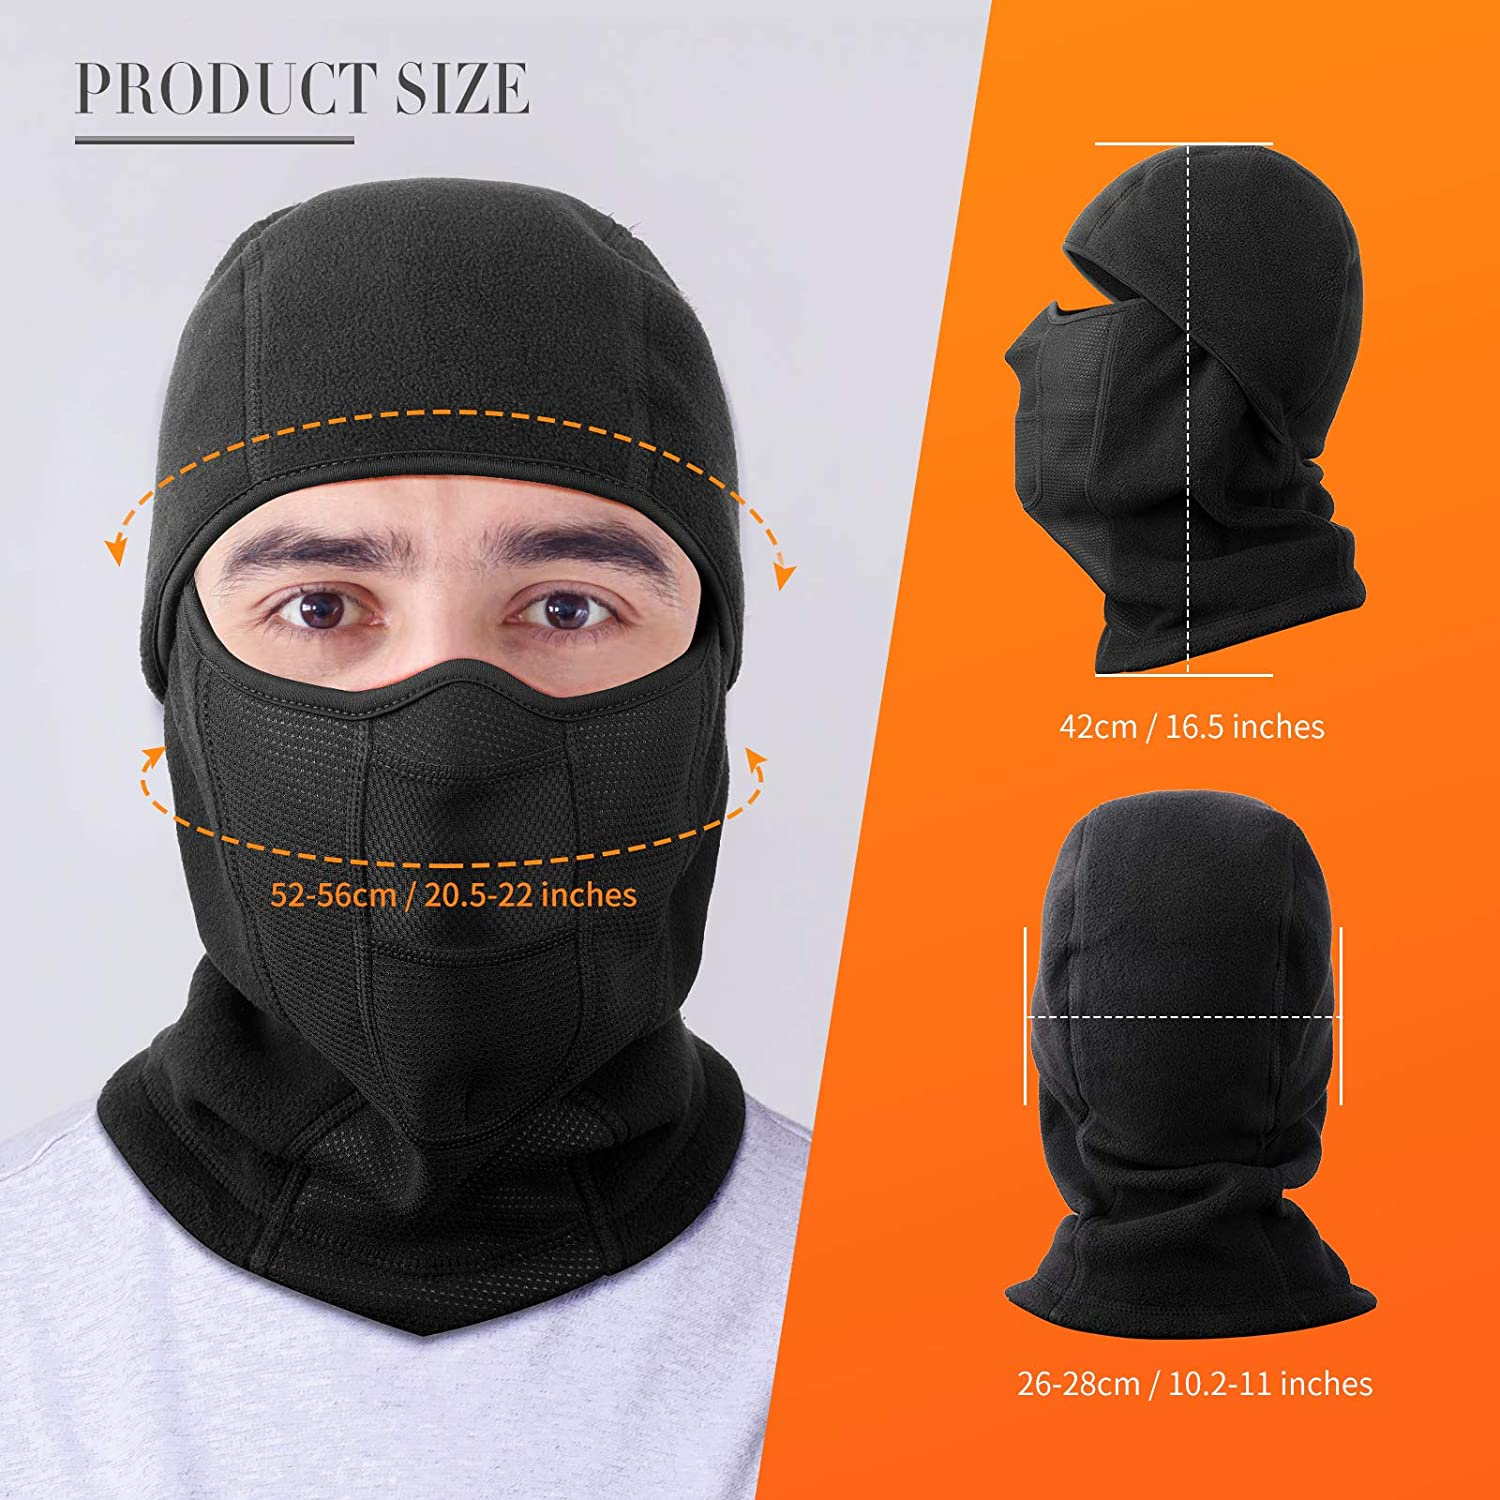 Balaclava Ski Mask Winter - Breathable Face Mask with UV Protection for Men and Women, Windproof & Sandproof Pull On Closure for Cold Weather Working, Skiing, Biking, Motorcycle Riding, Black at  Men's Clothing store